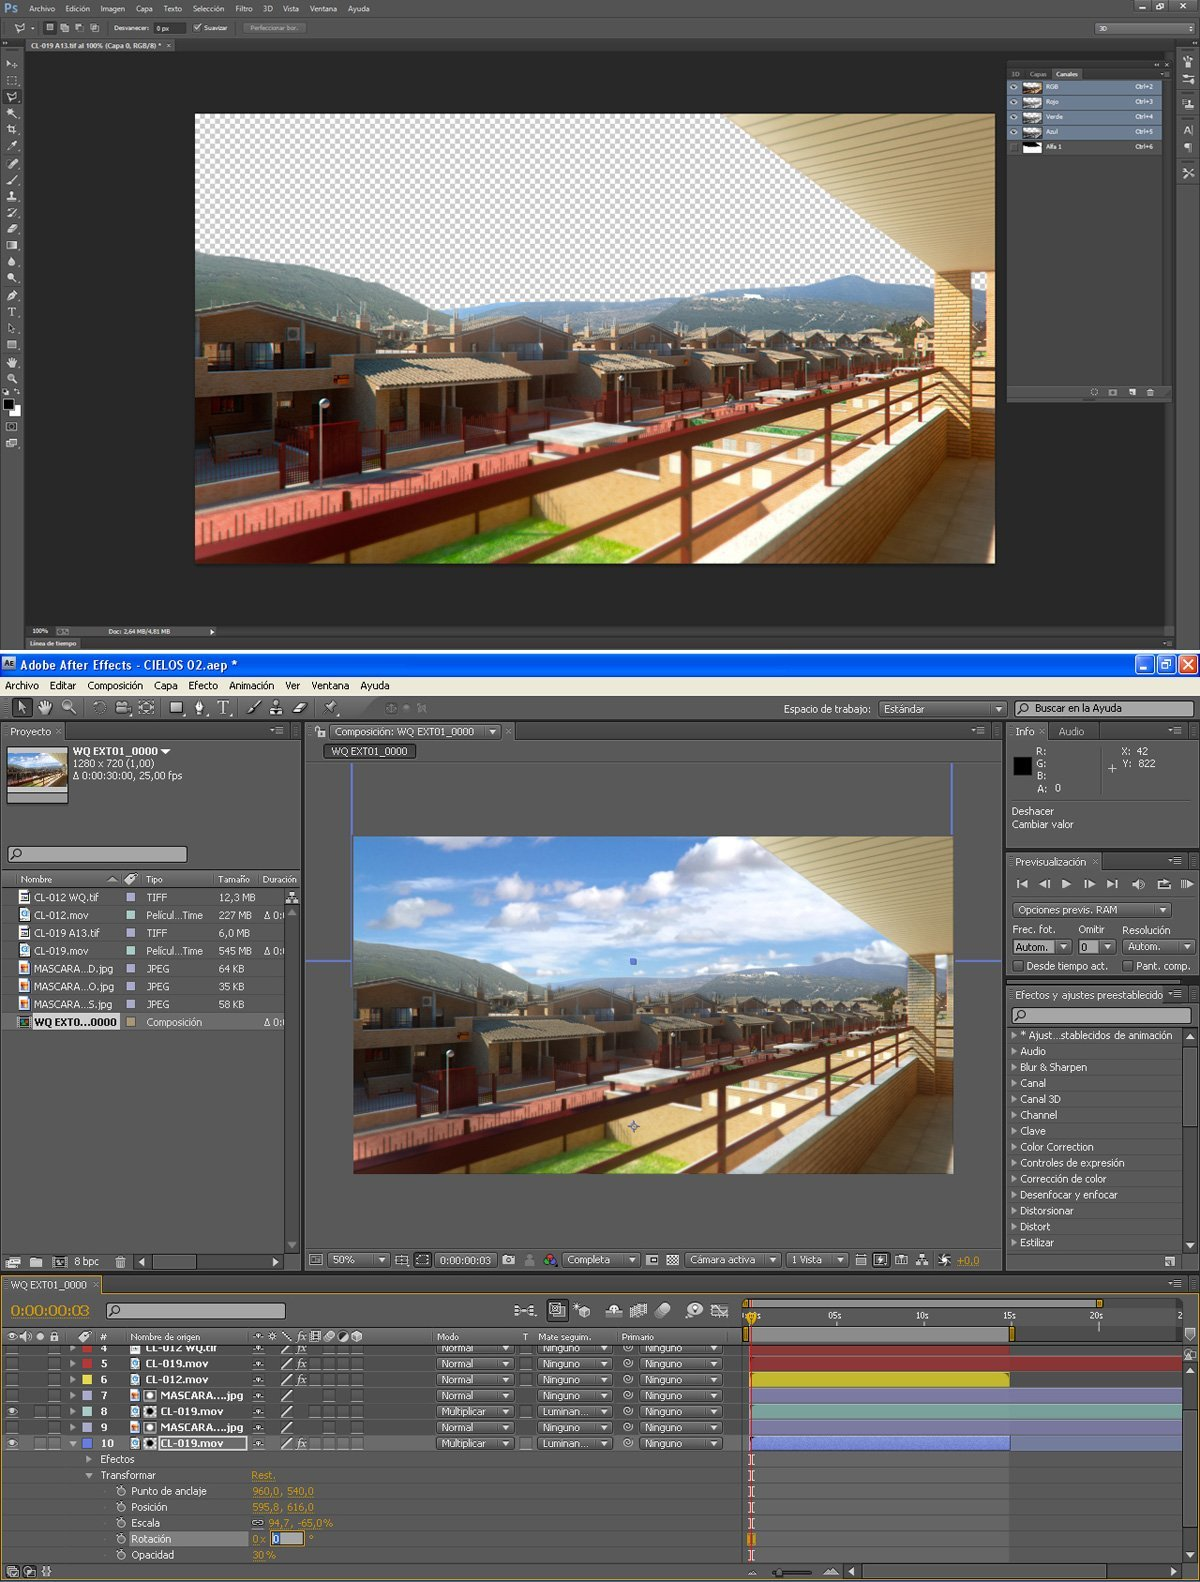 animation troubles setting alpha channel to include a sky timelapse in post production